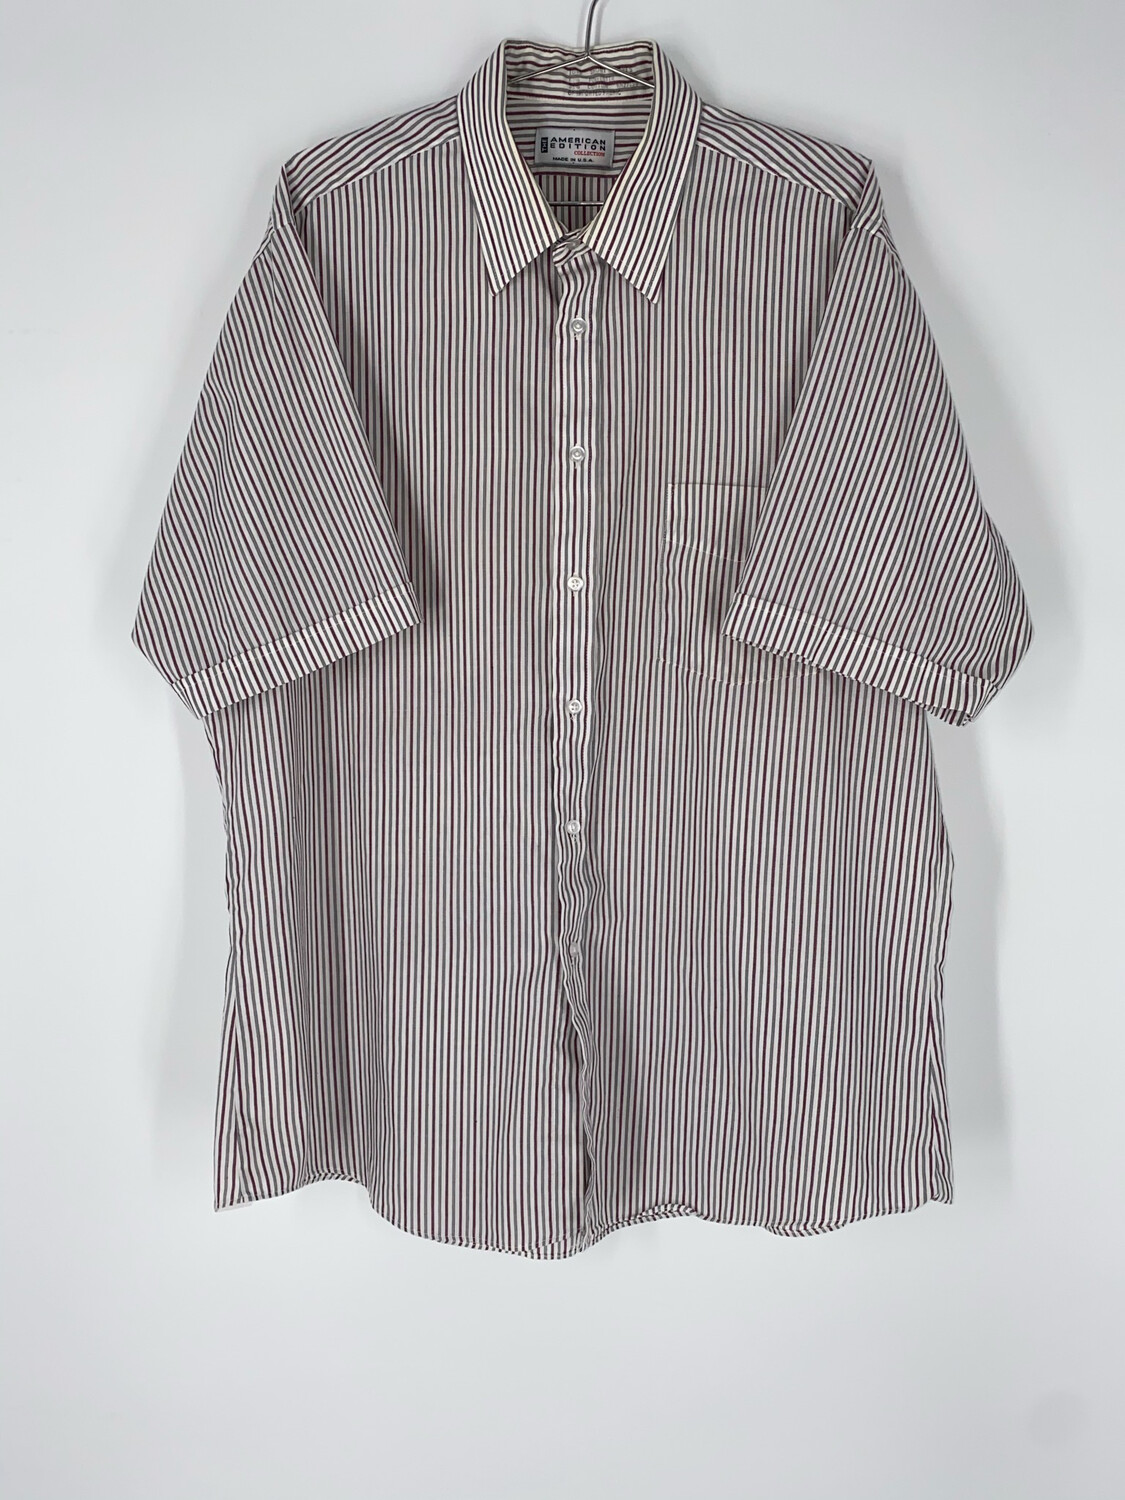 The American Edition Button Up Size Large